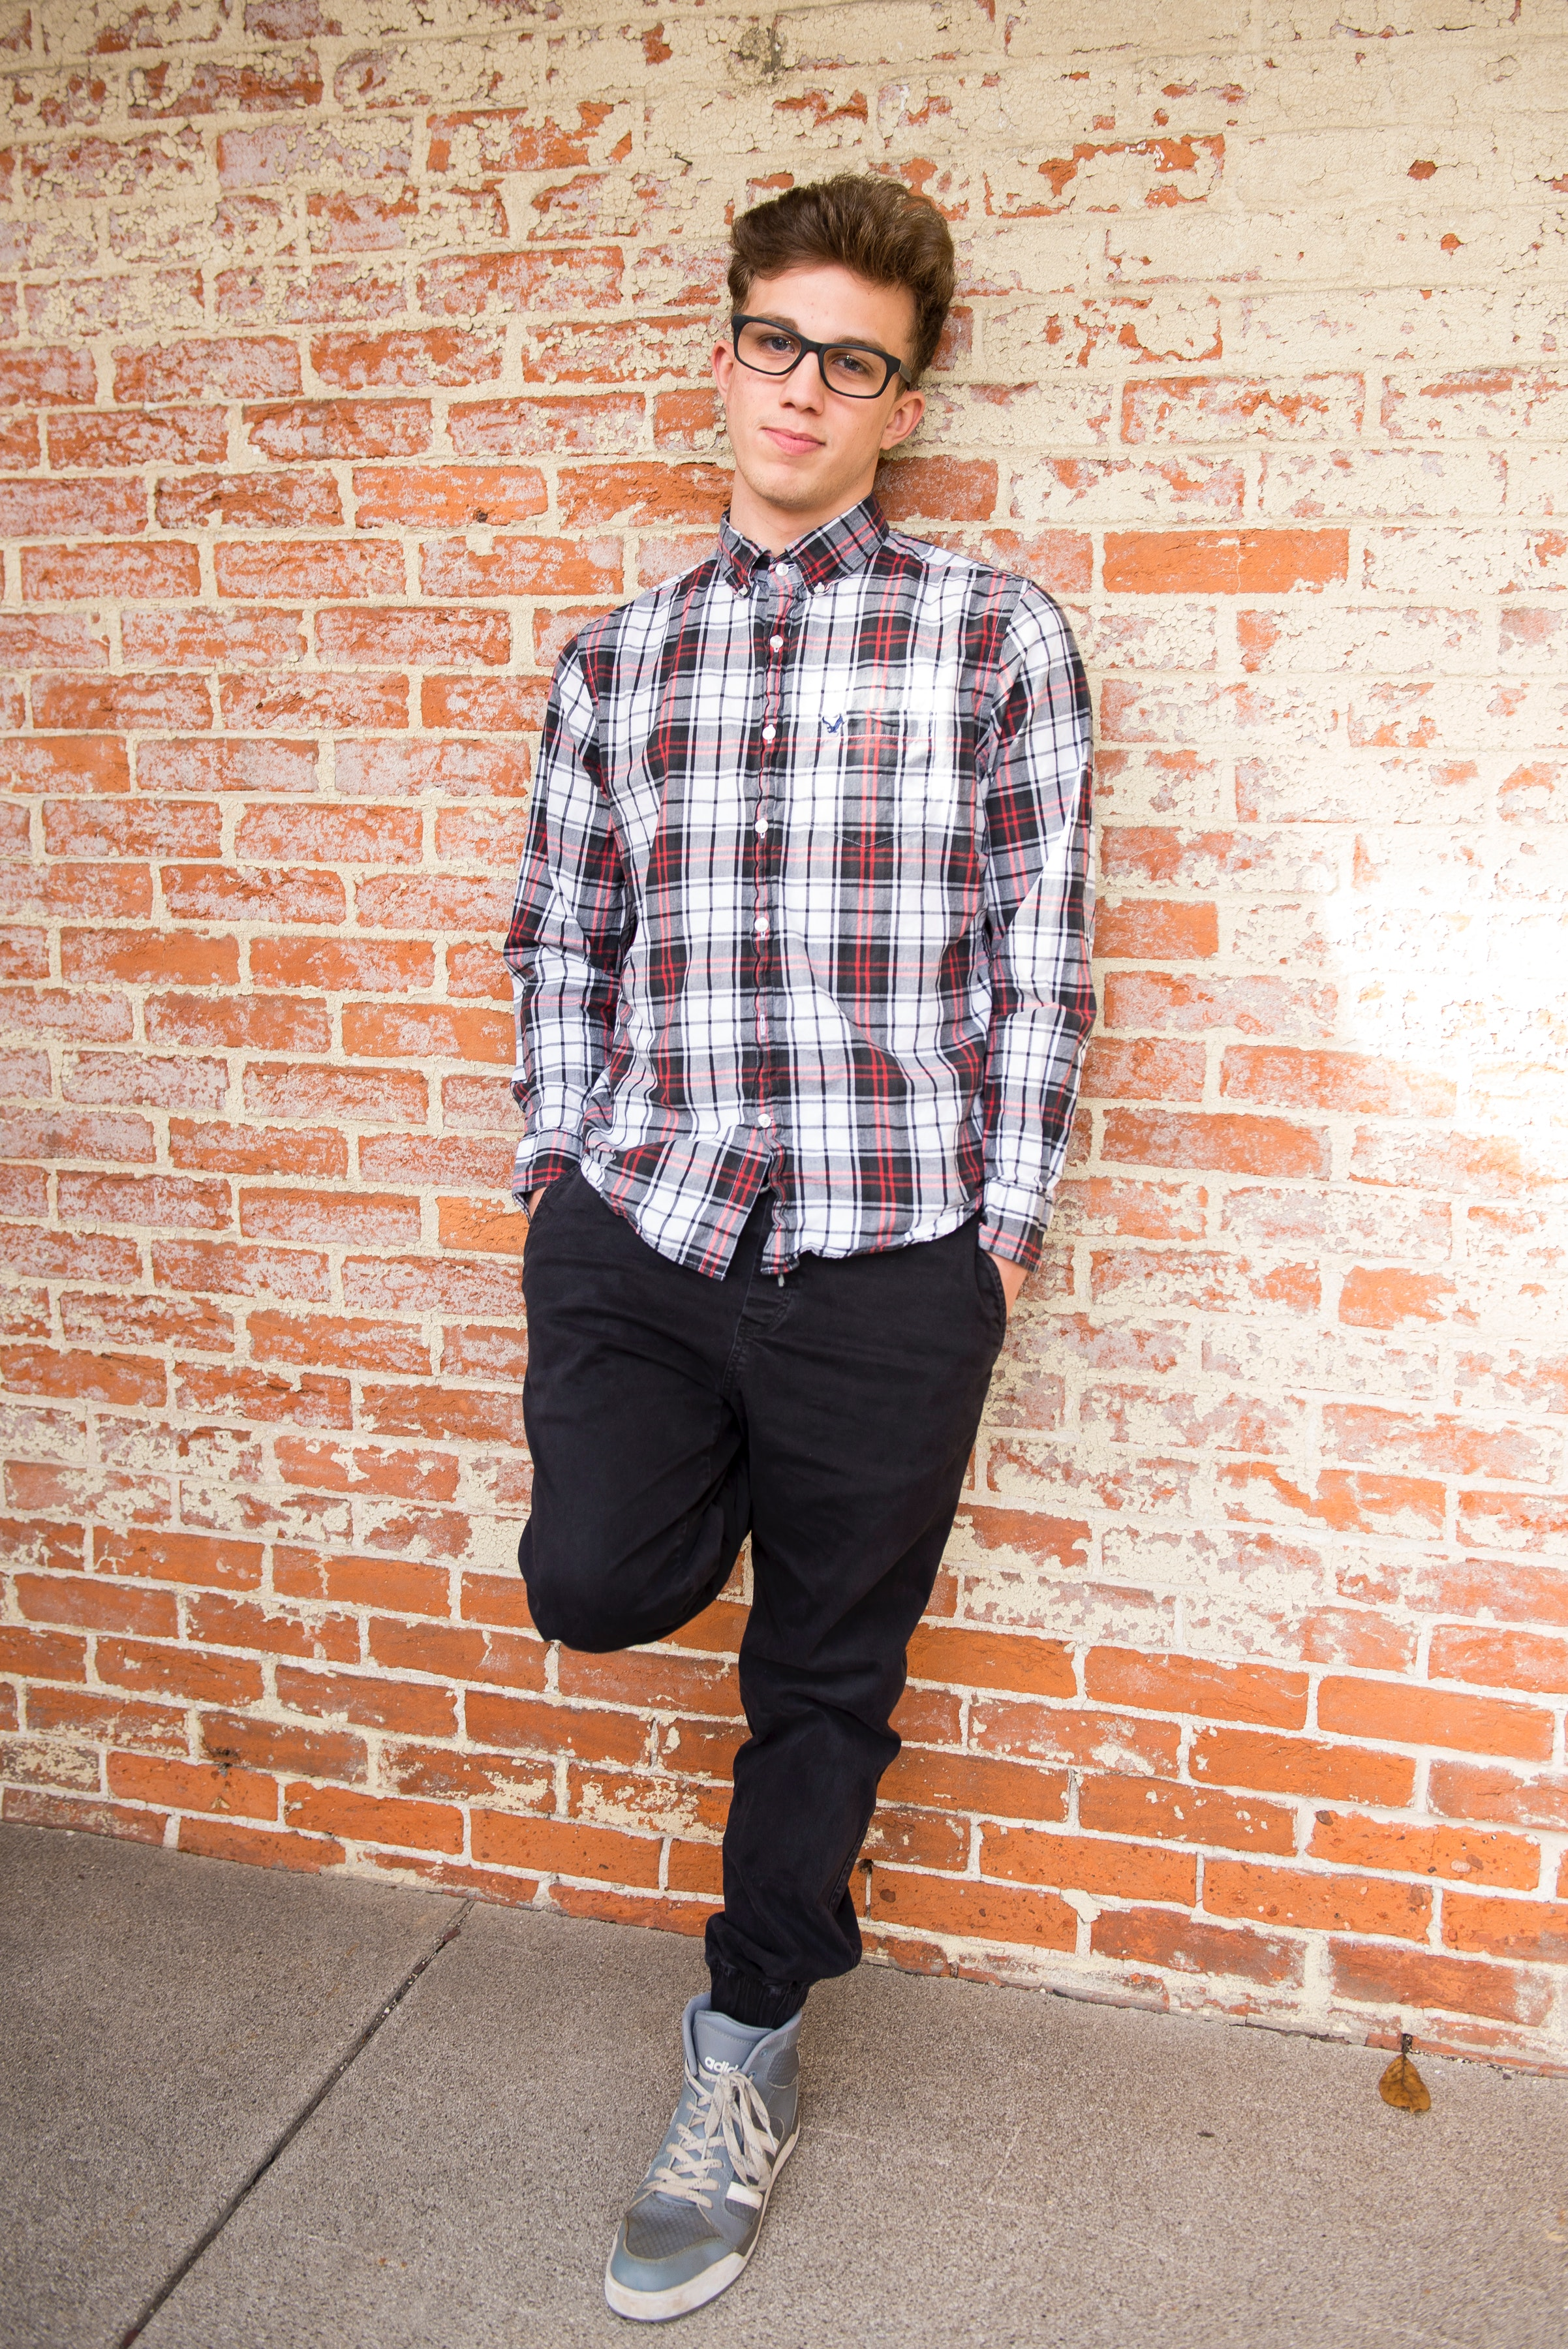 Man Wearing Red And White Plaid Dress Shirt And Black Pants · Free ...